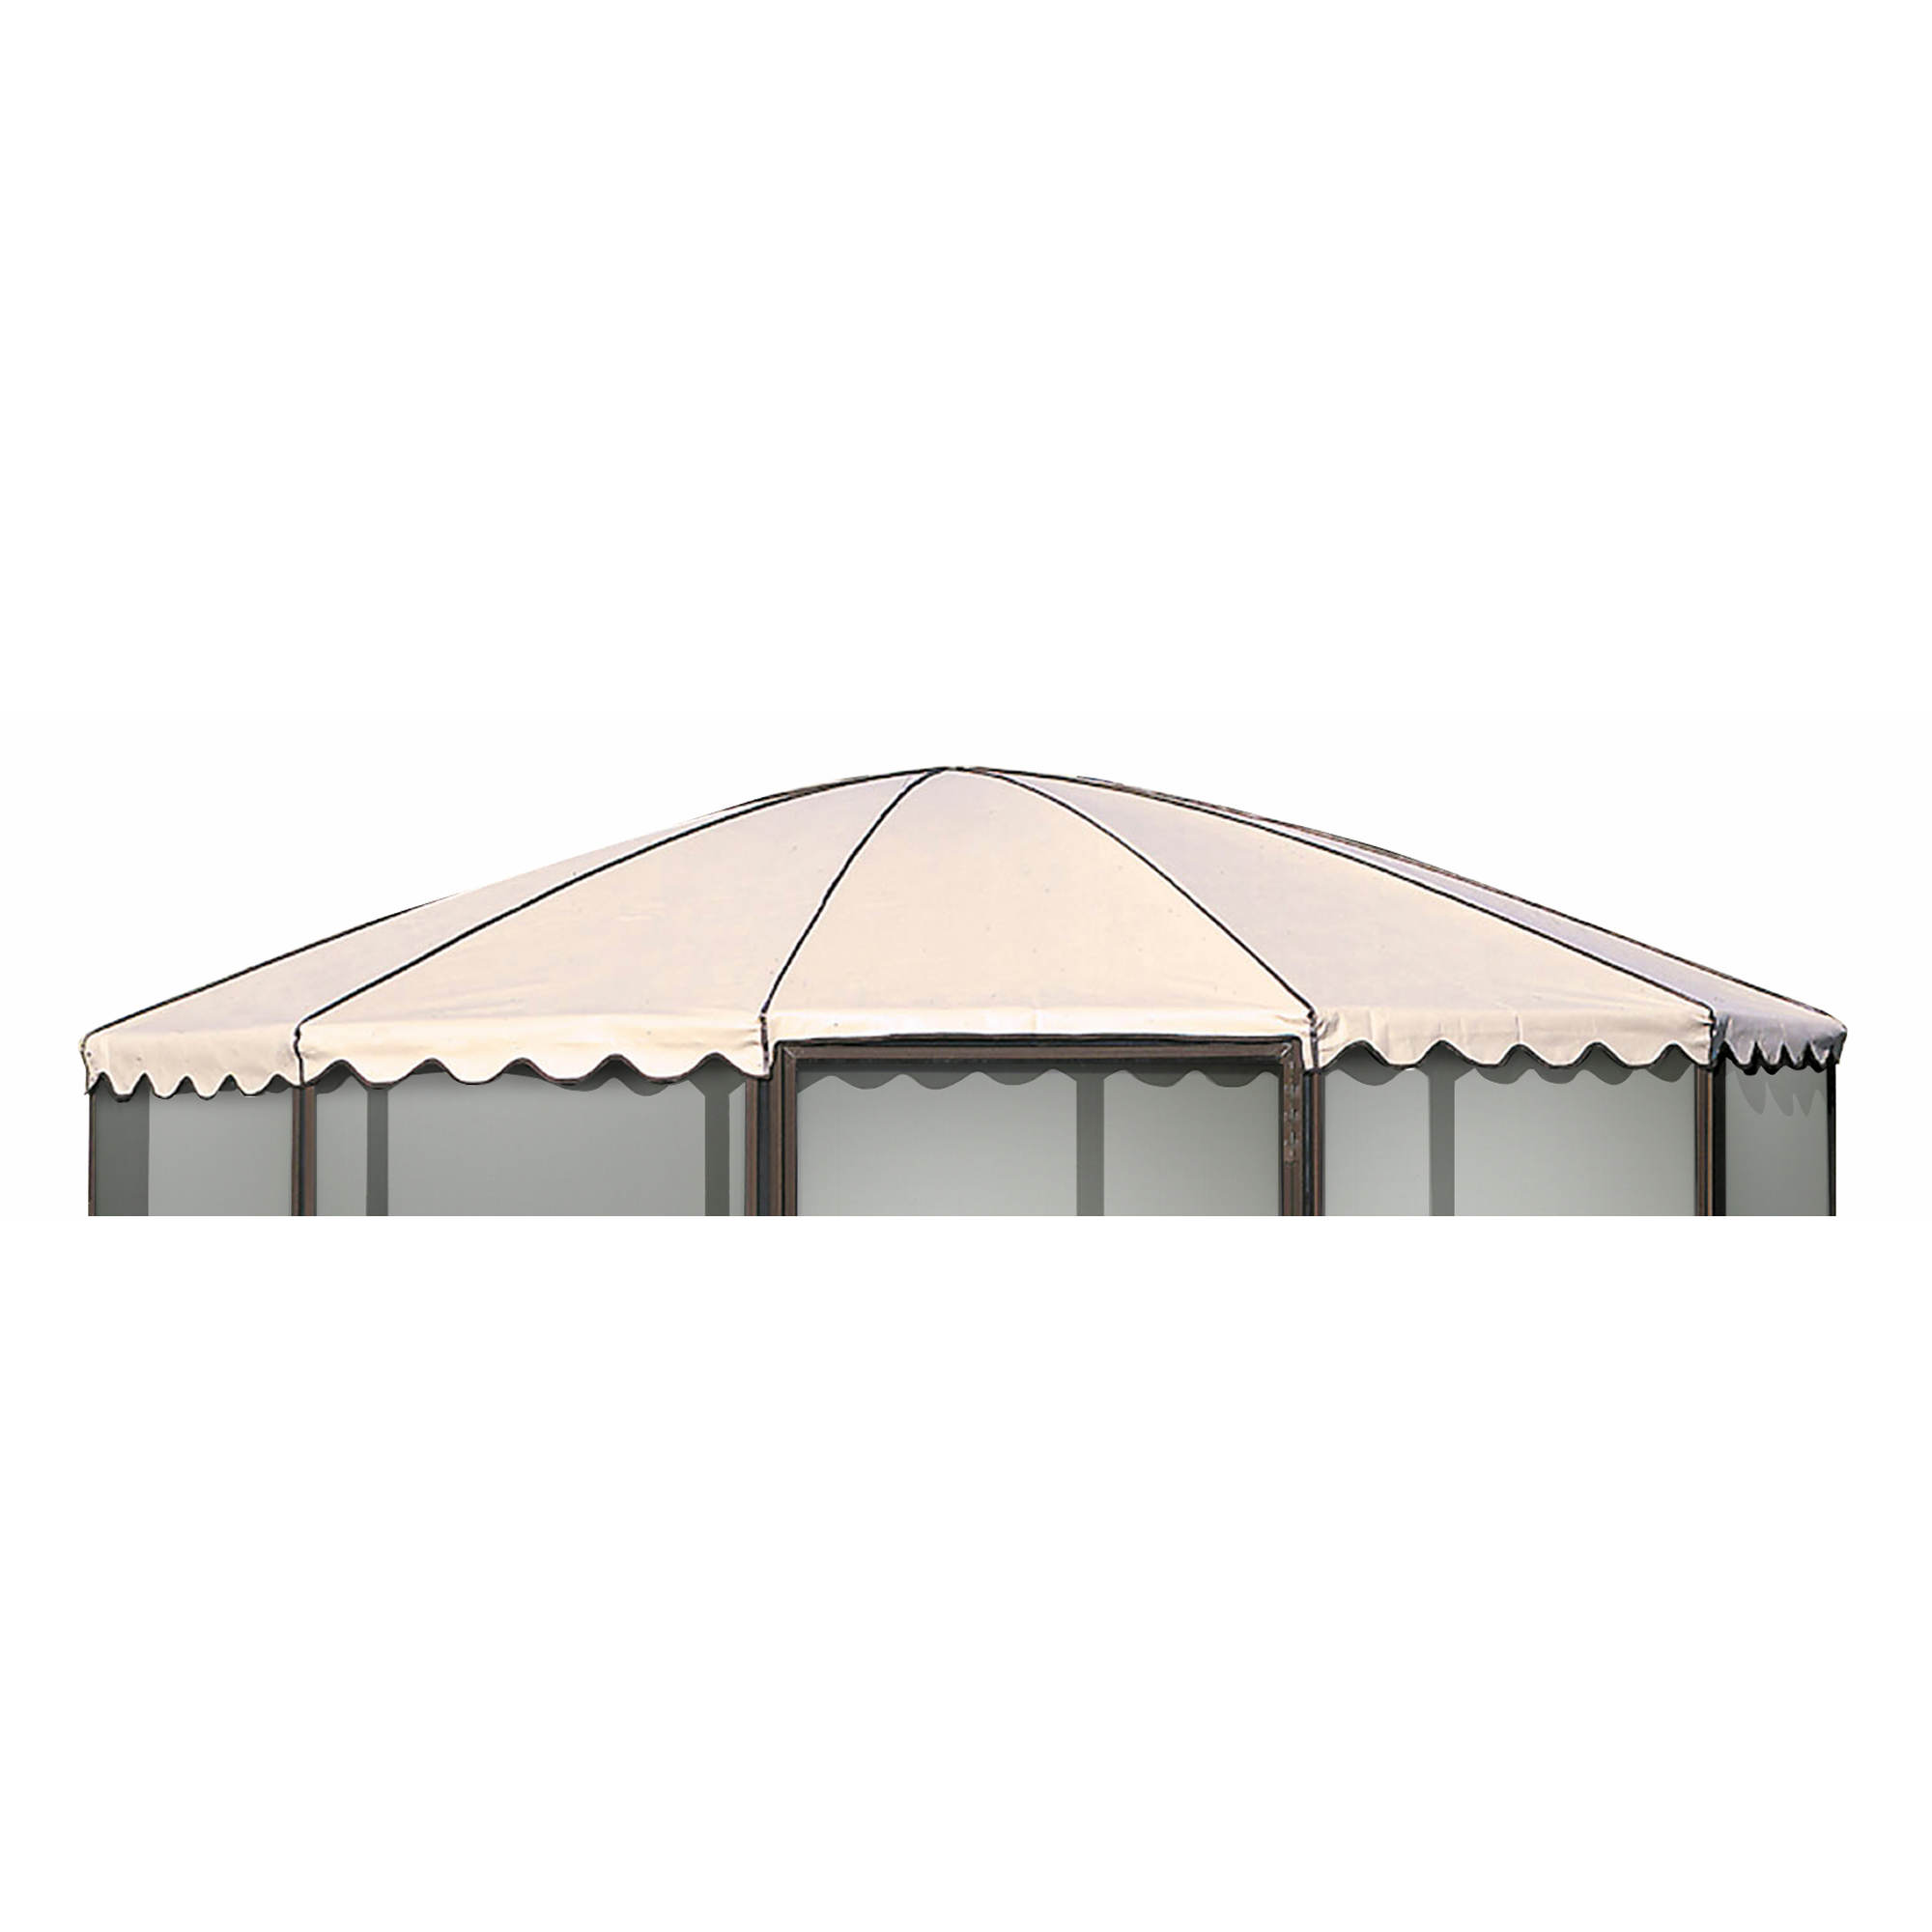 "Replacement Roof for Casita 14'9"" Complete Round Screenhouse, Model 23165 - Almond"